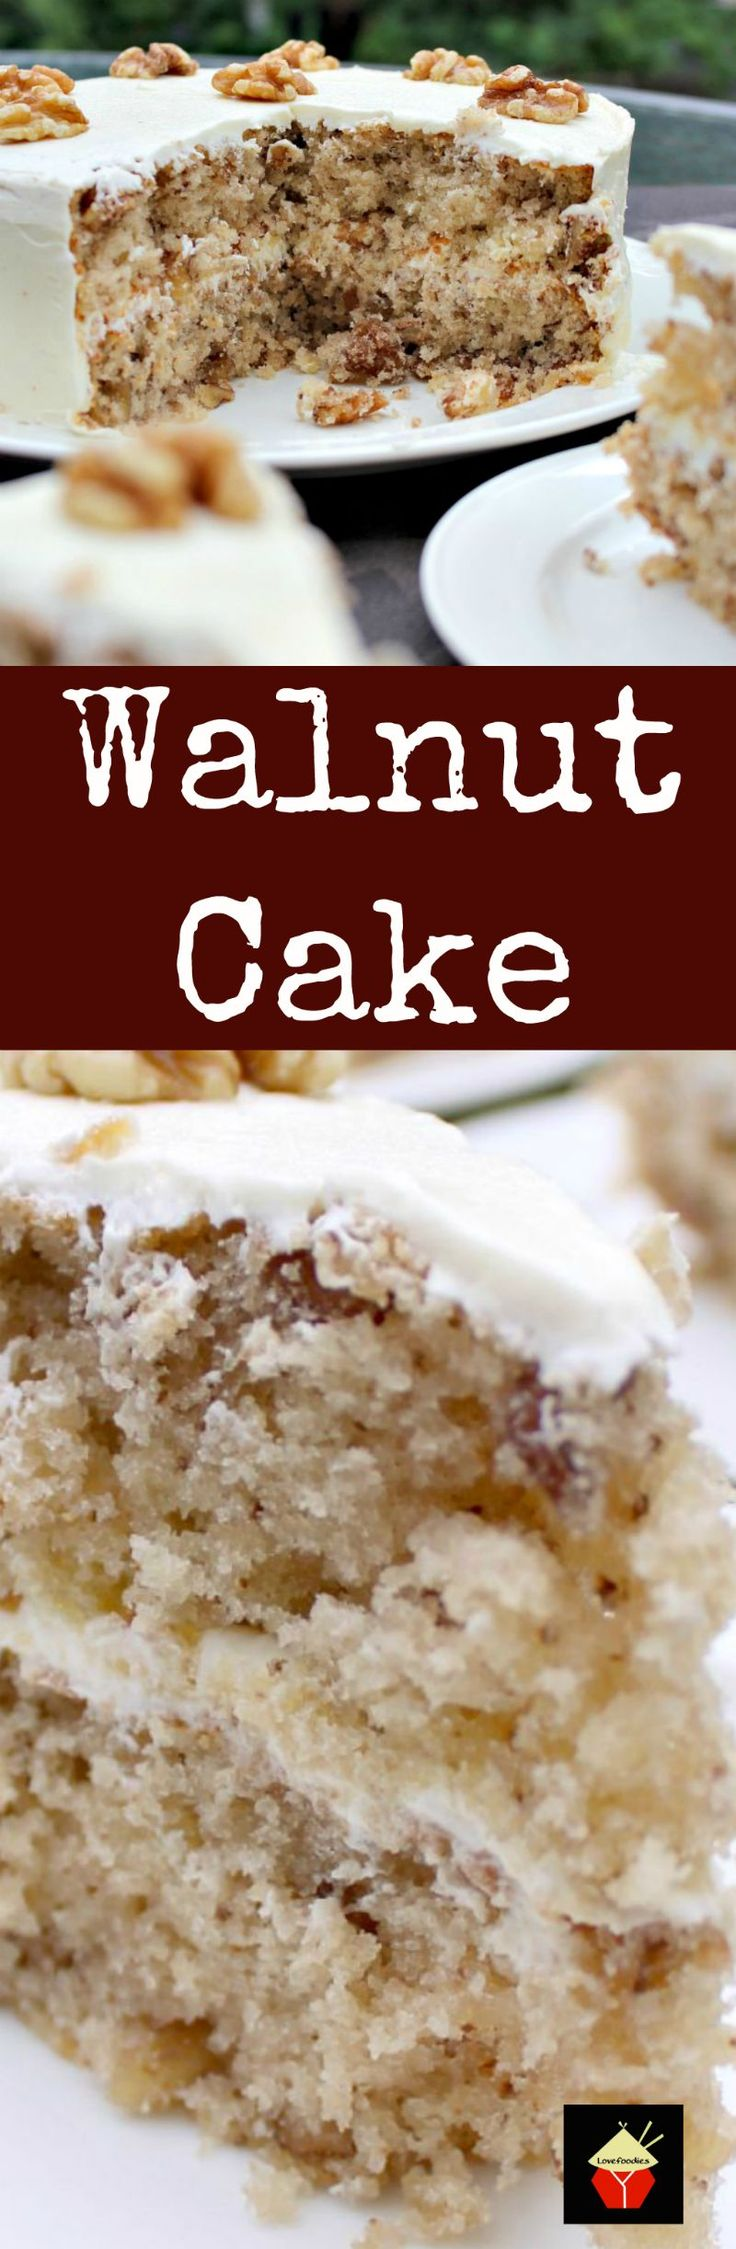 Walnut Cake is a delicious easy recipe. the cake is so soft and fluffy! Recipe also for a lovely vanilla frosting. You can make this as a round cake or a loaf, instructions for both. Freezer friendly too. This would also make a nice cake for Christmas time! | Lovefoodies.com